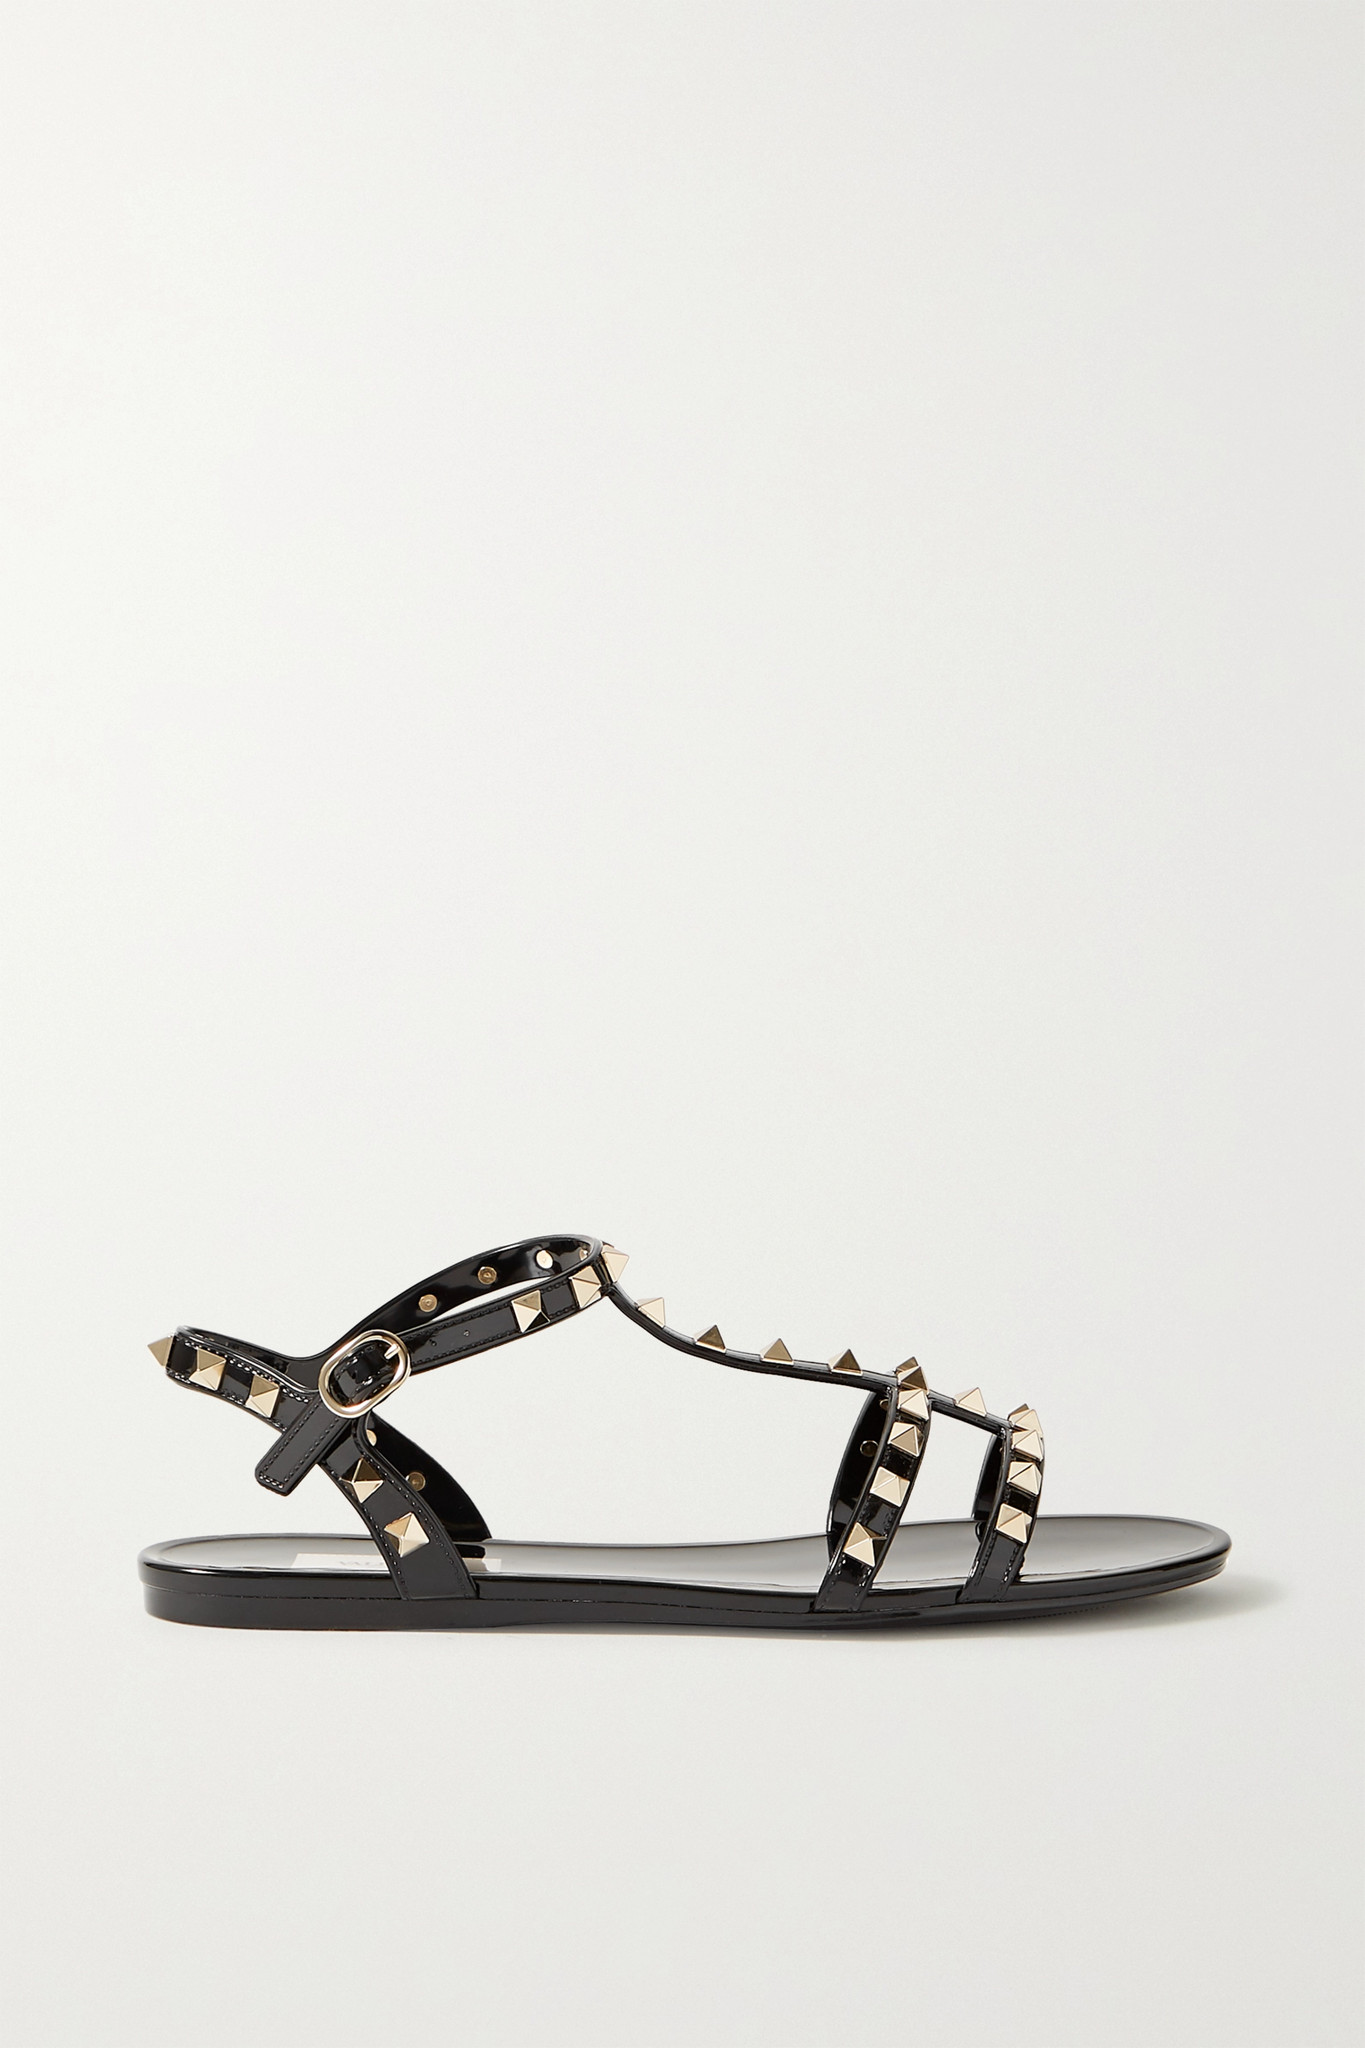 VALENTINO - Valentino Garavani Rockstud Rubber Sandals - Black - IT37